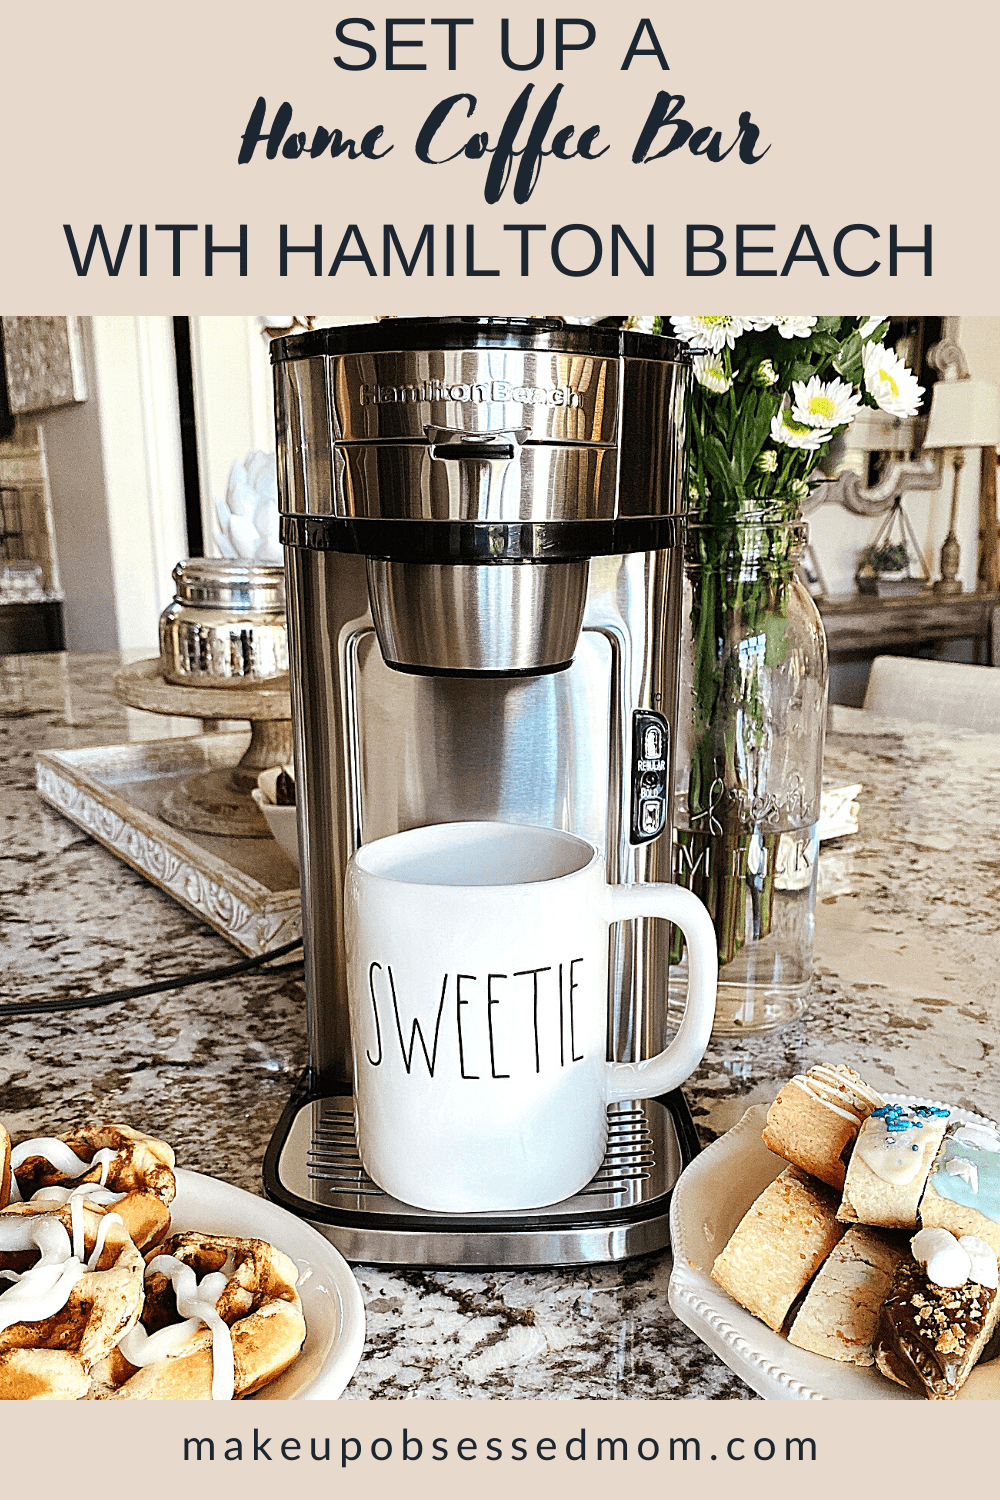 Save Money with a Home Coffee Bar